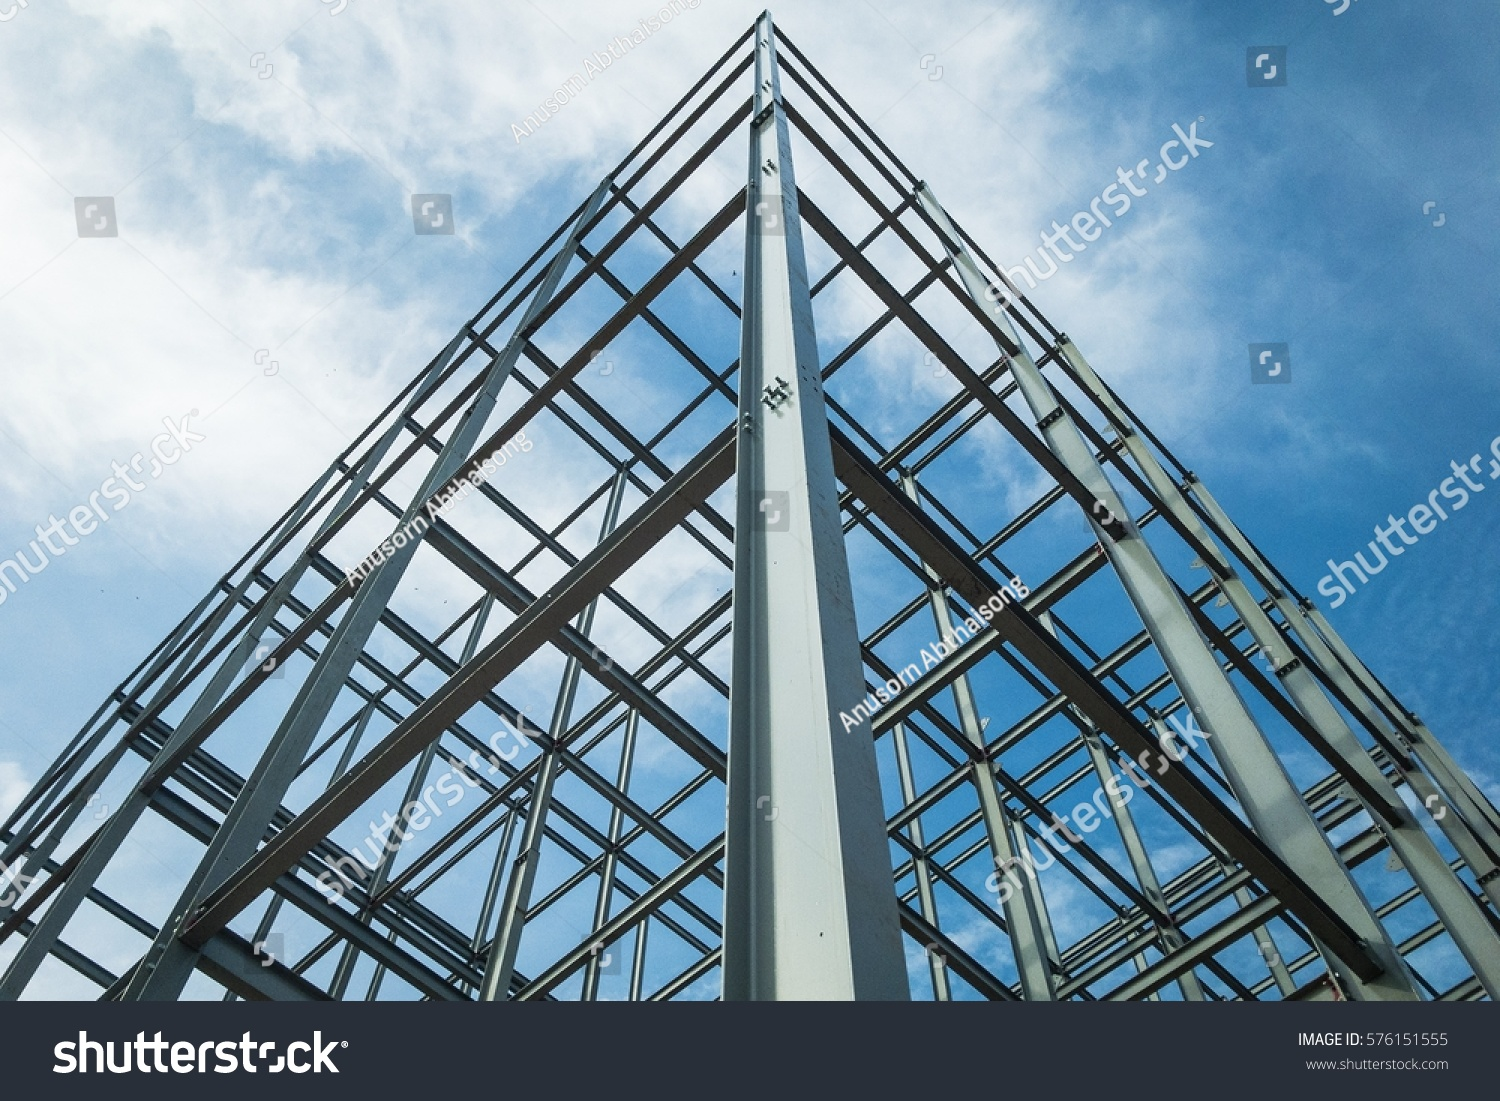 Structure of steel  for building construction on sky background.